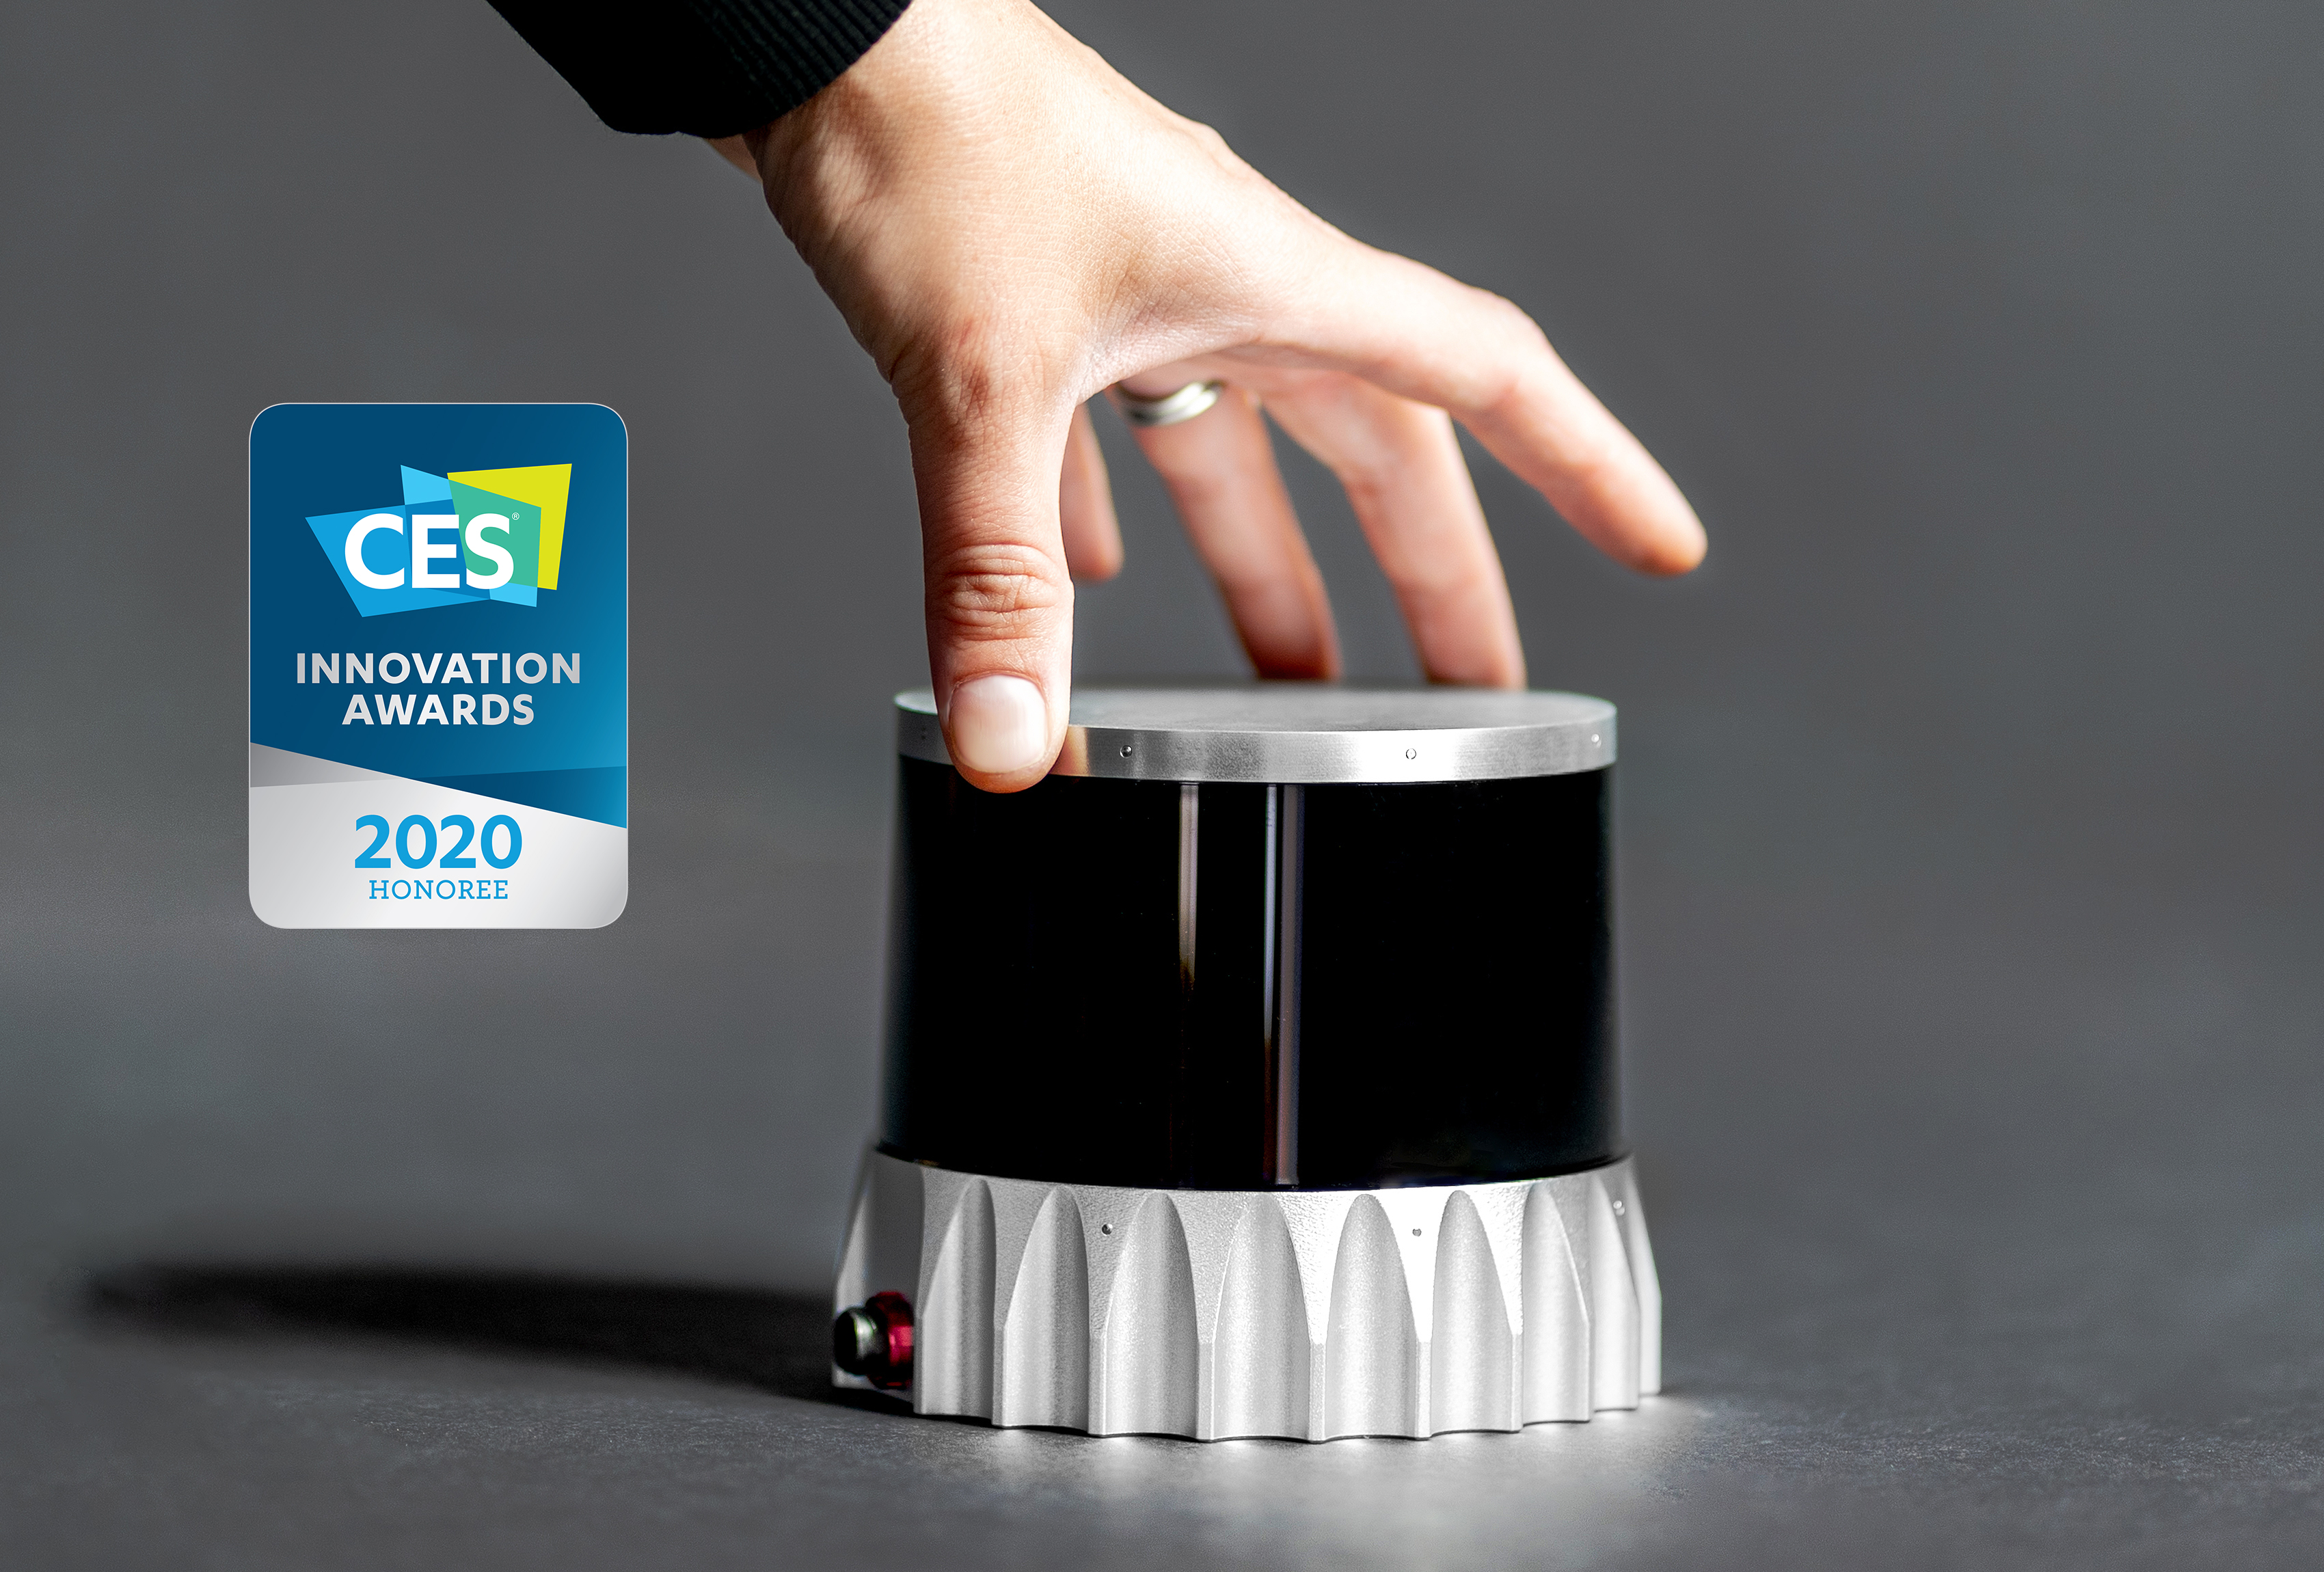 Ouster OS2 Lidar sensor won a 2020 CES Innovation award